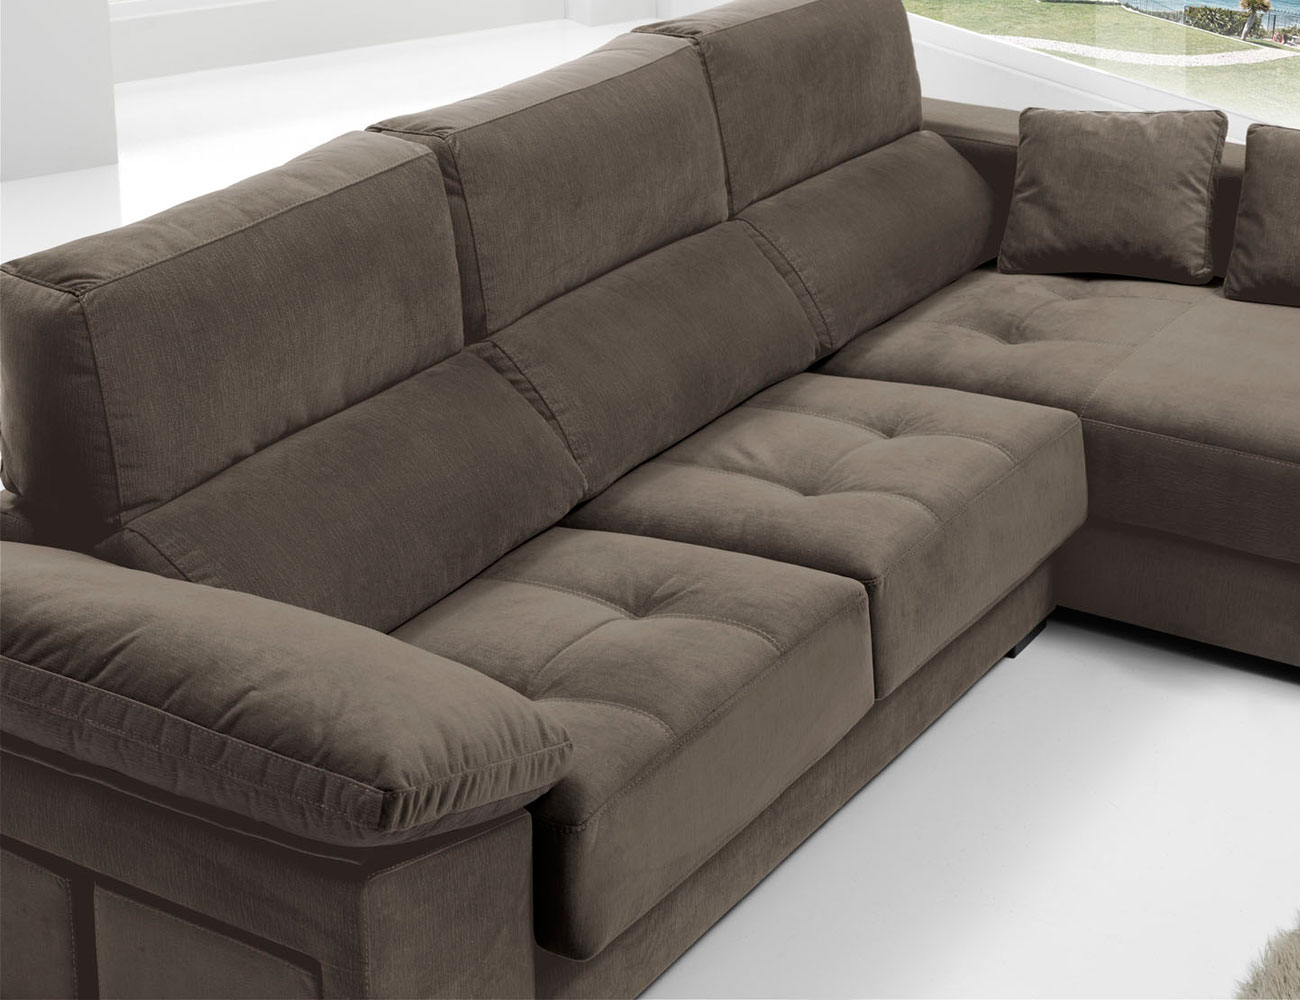 Sofa chaiselongue anti manchas bering pouf 269